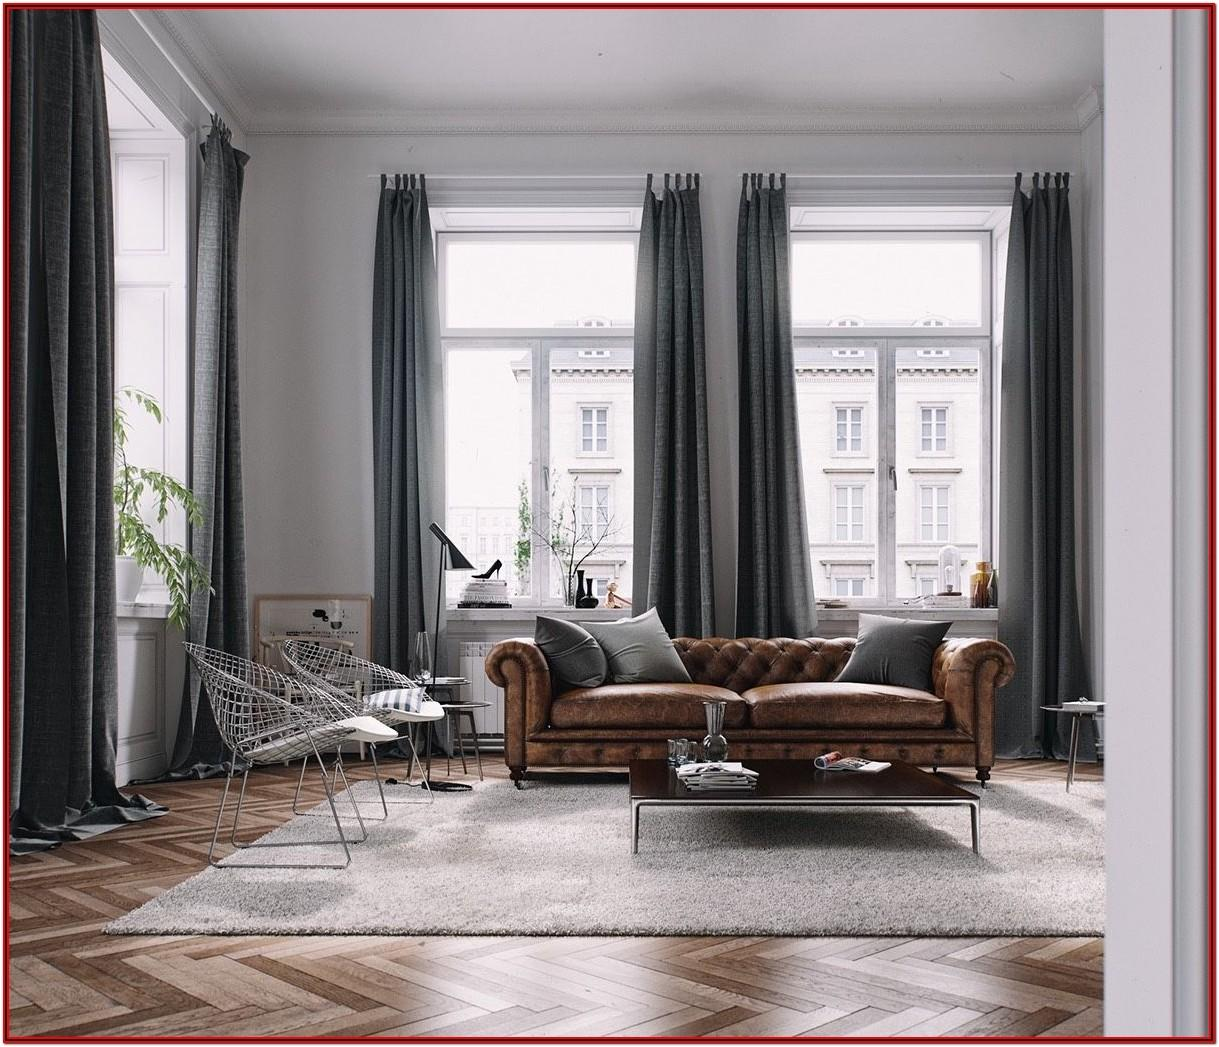 Modern Curtains For Living Room With Brown Furniture